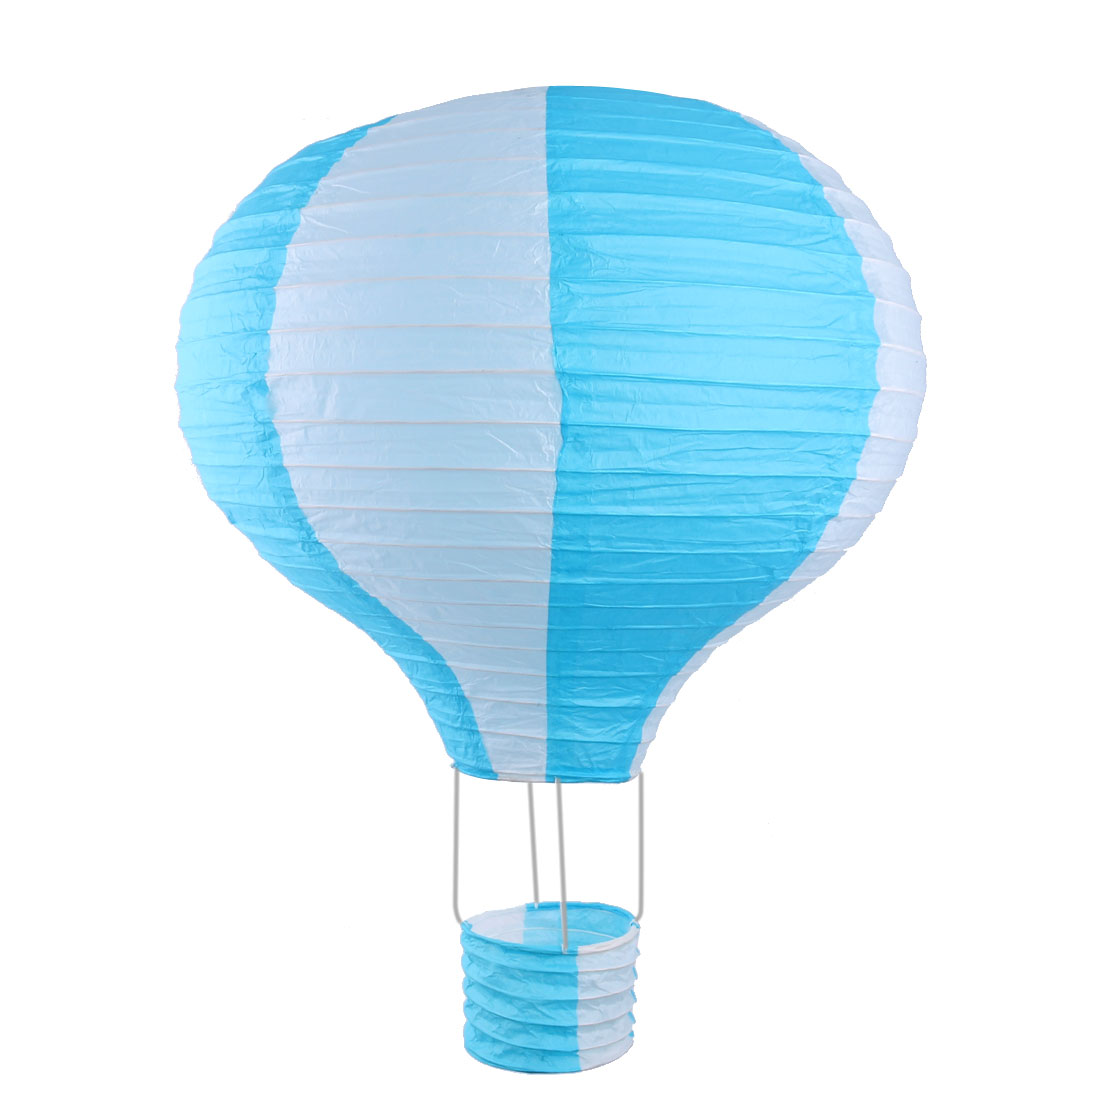 Household Party Paper Lightless Hanging DIY Decor Hot Air Balloon Lantern Blue White 16 Inch Dia